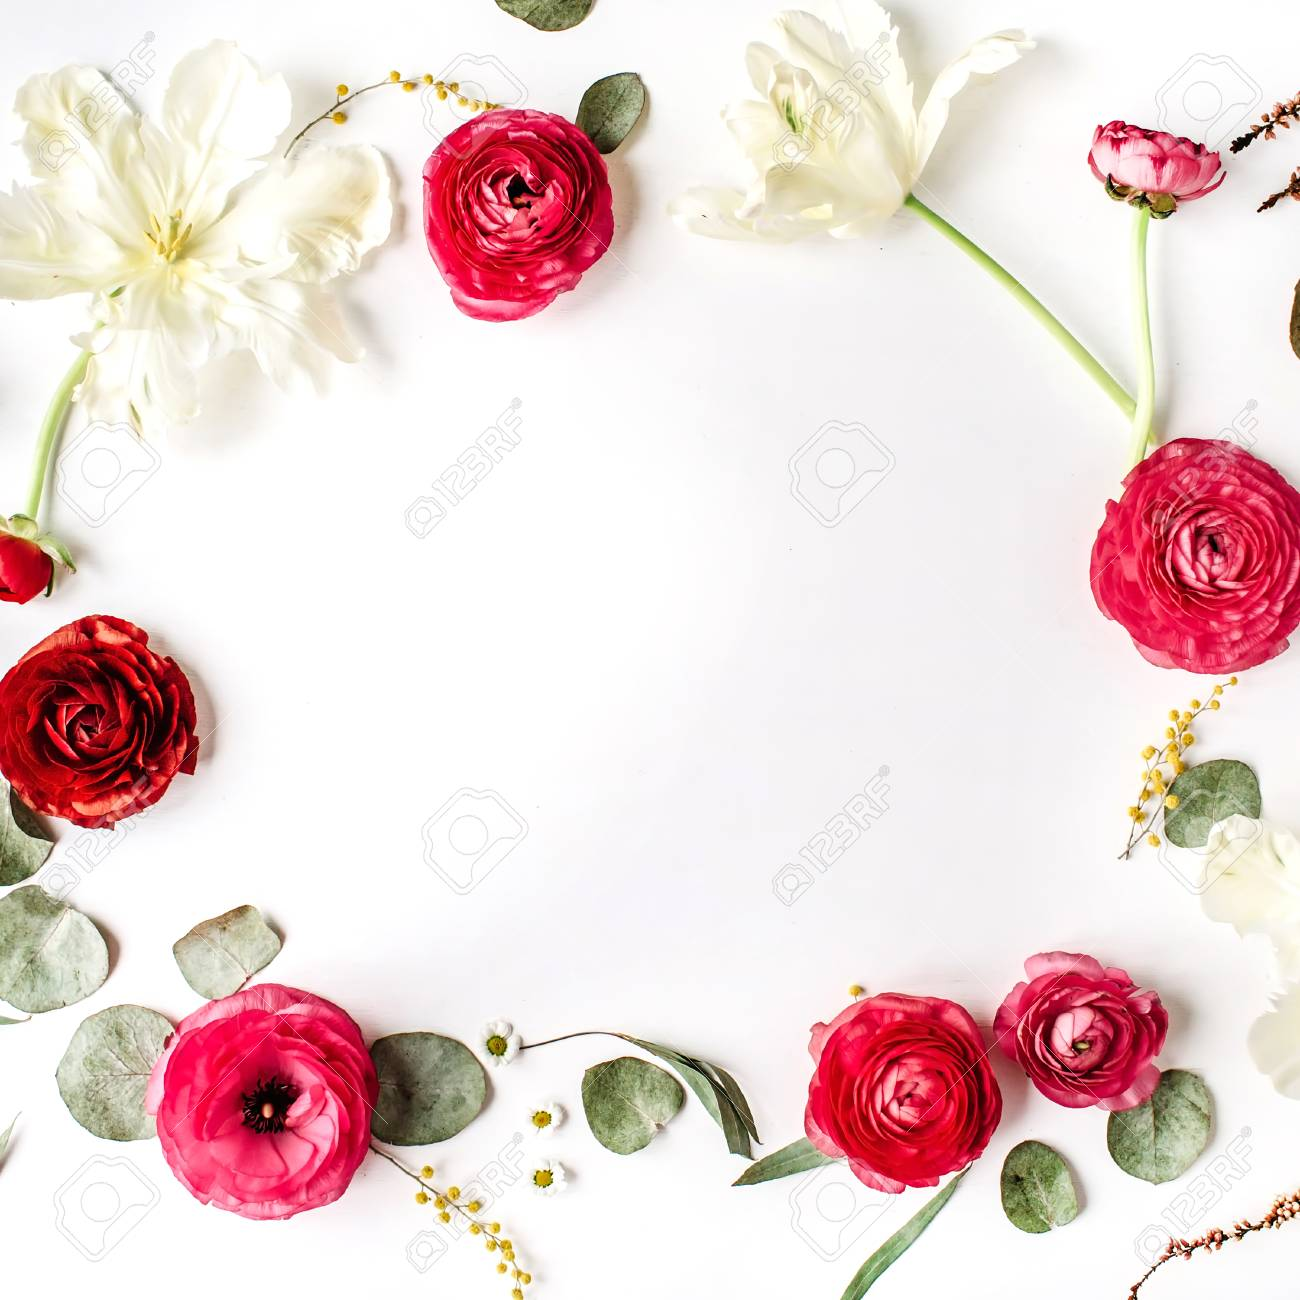 Floral frame of pink and red roses or ranunculus white tulips floral frame of pink and red roses or ranunculus white tulips and green leaves on jeuxipadfo Images